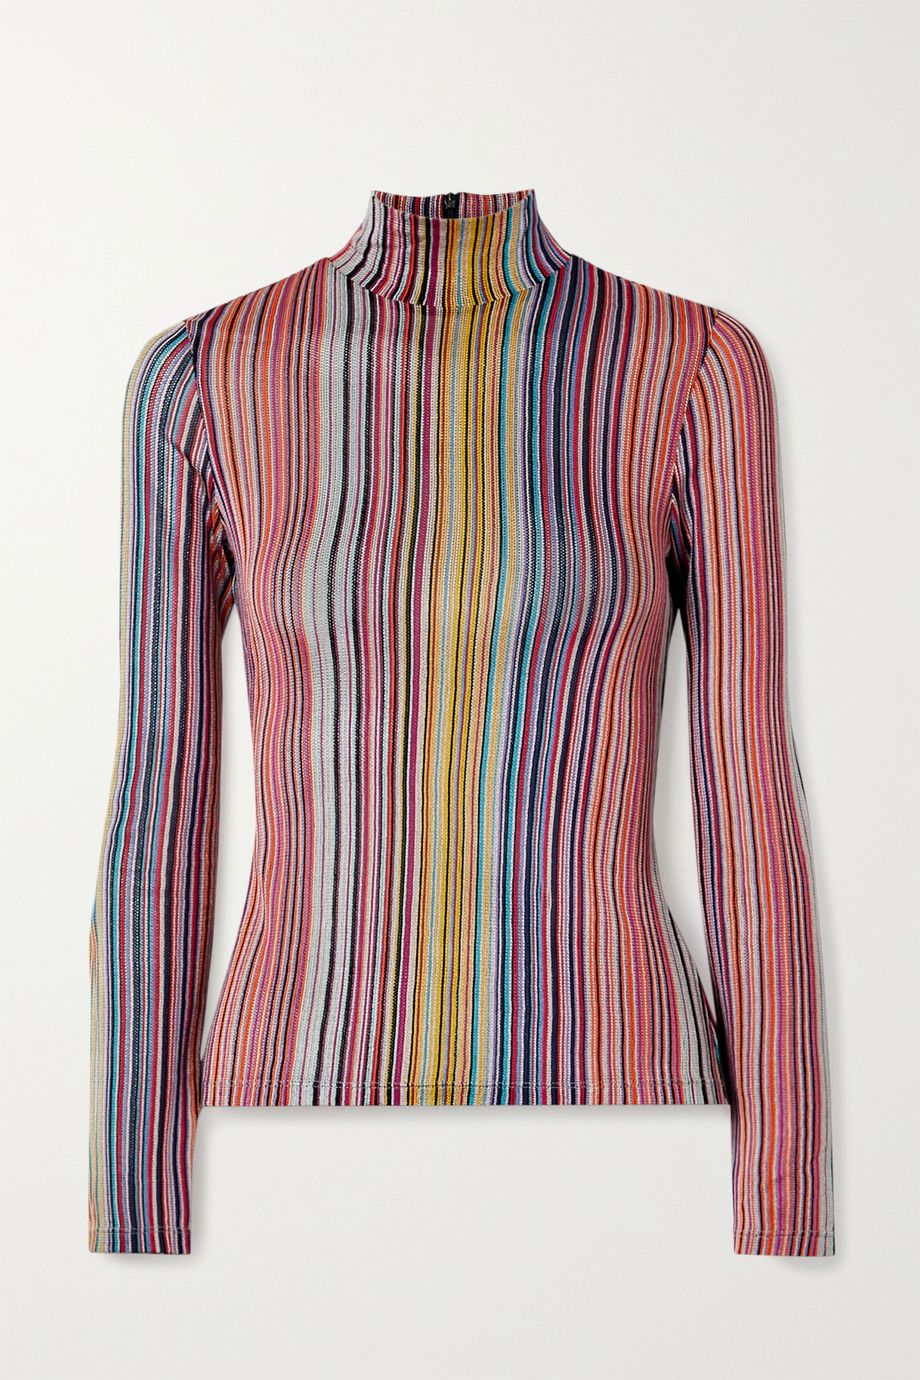 Beaufille Mena striped stretch jacquard-knit turtleneck top